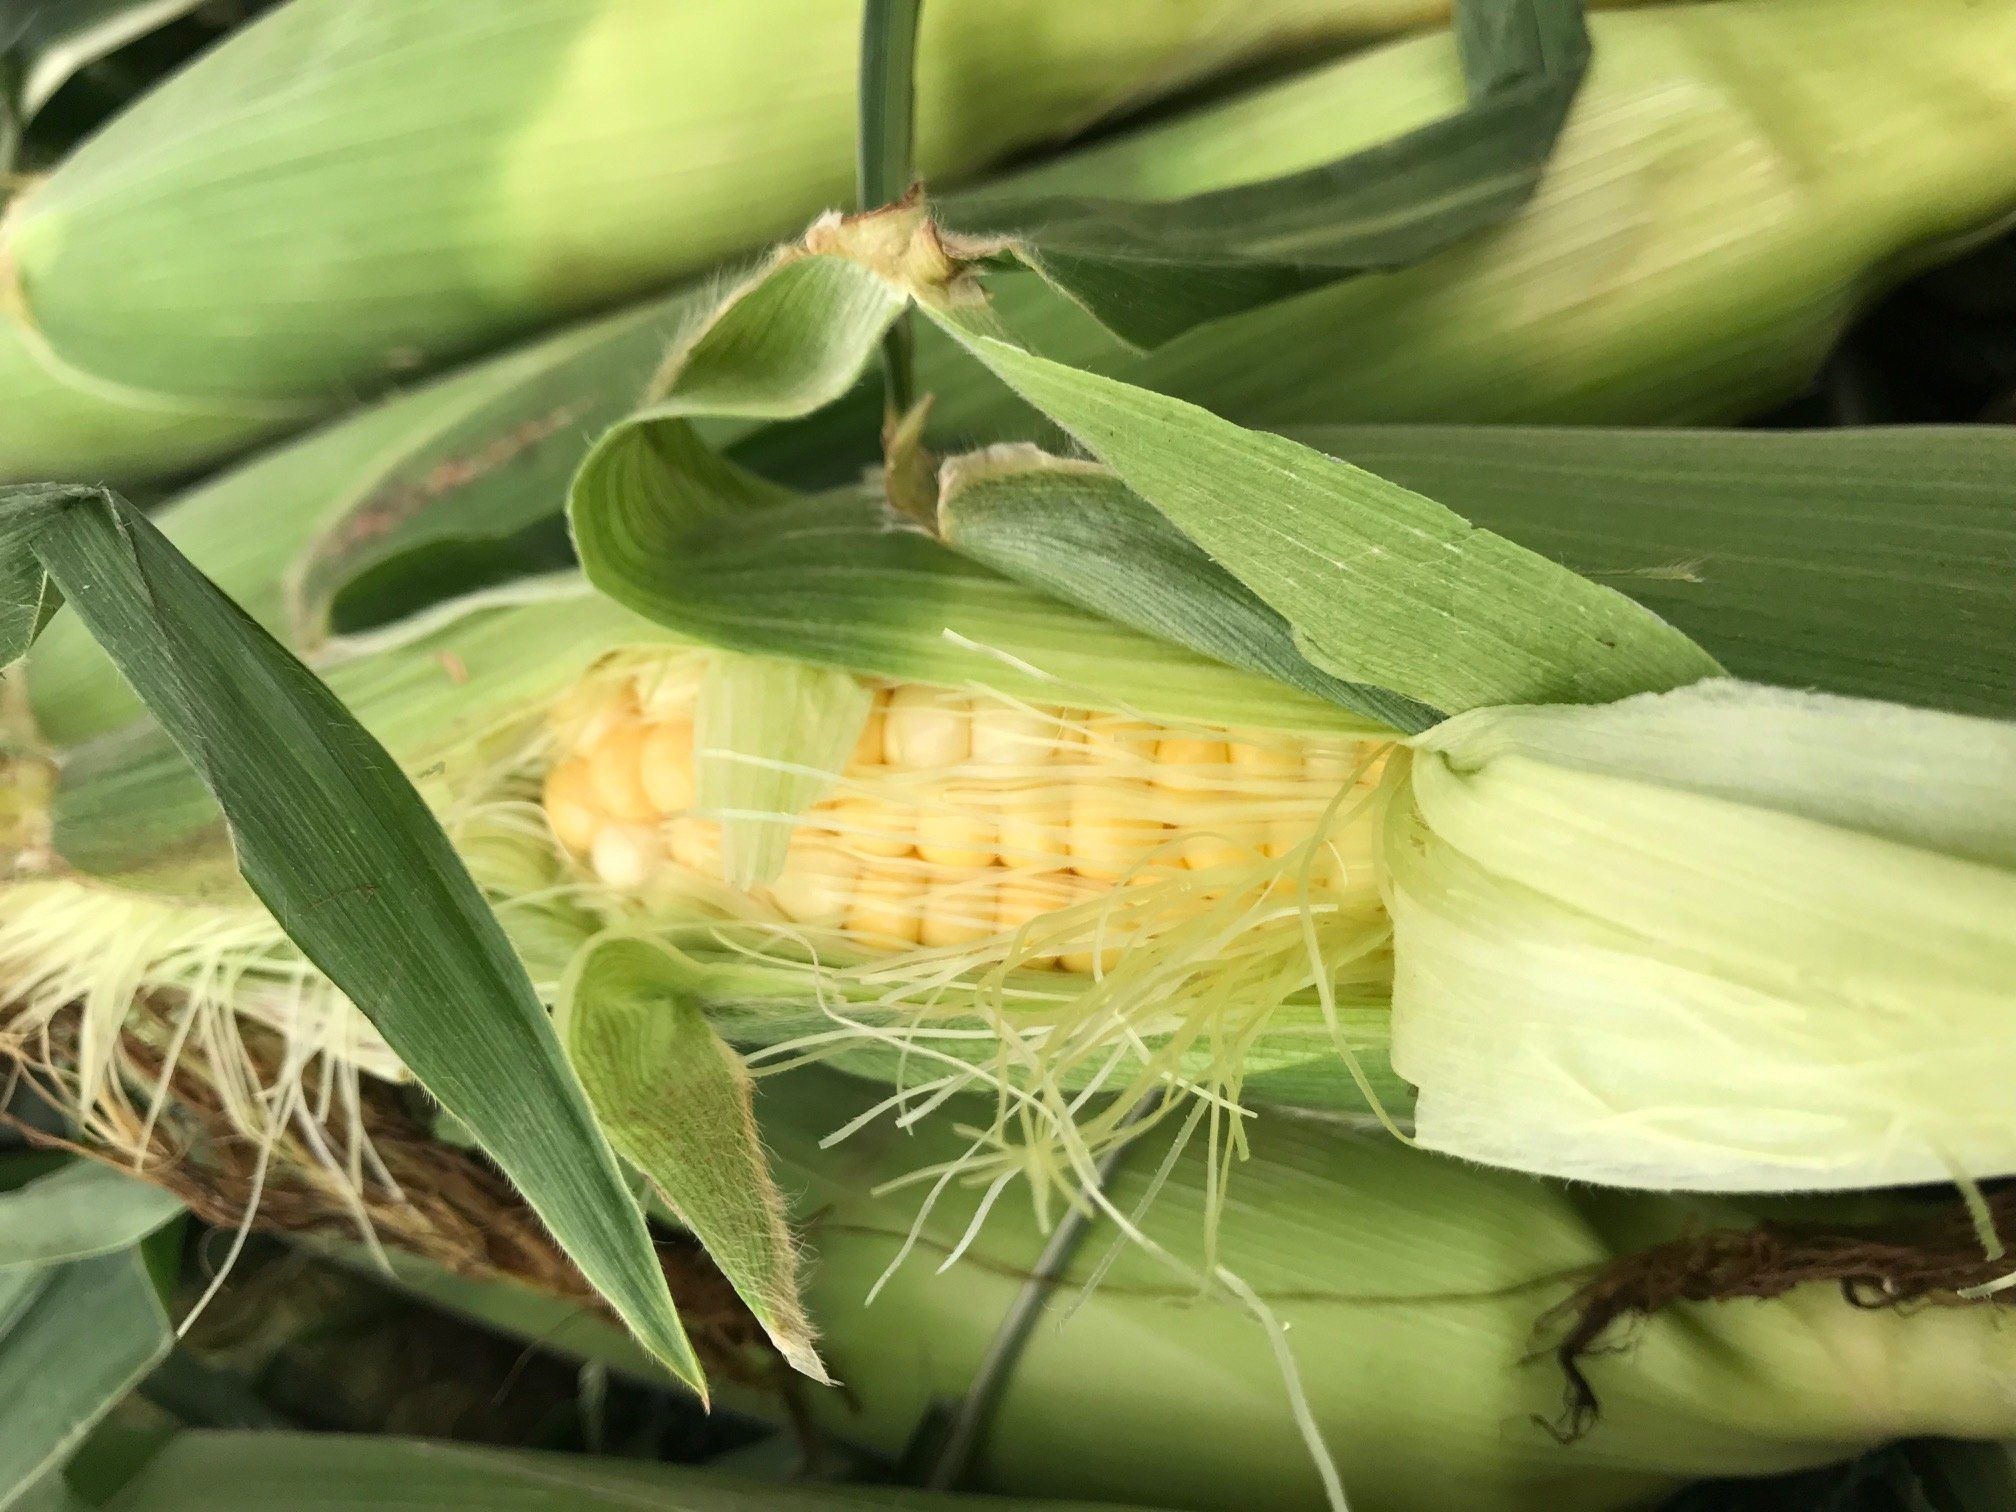 Previous Happening: Farm Happenings...mid July, bring on the summer fruit and Corn on the Cob